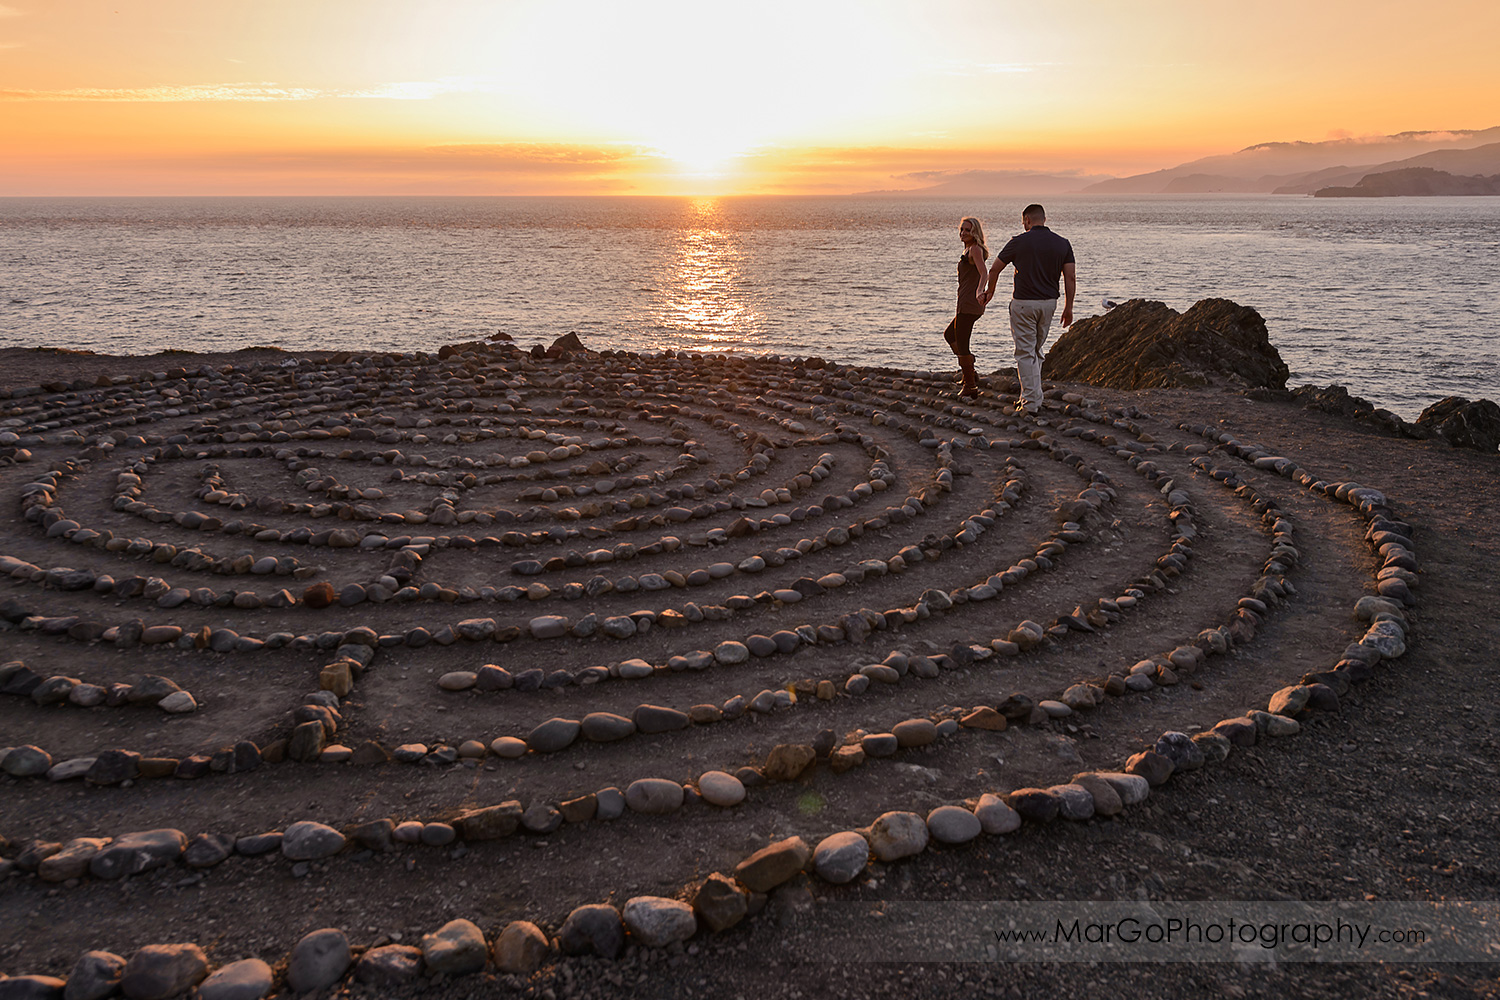 man in navy blue shirt and woman in brown tunic walking in the stone labyrinth during sunset engagement session at San Francisco Lands End